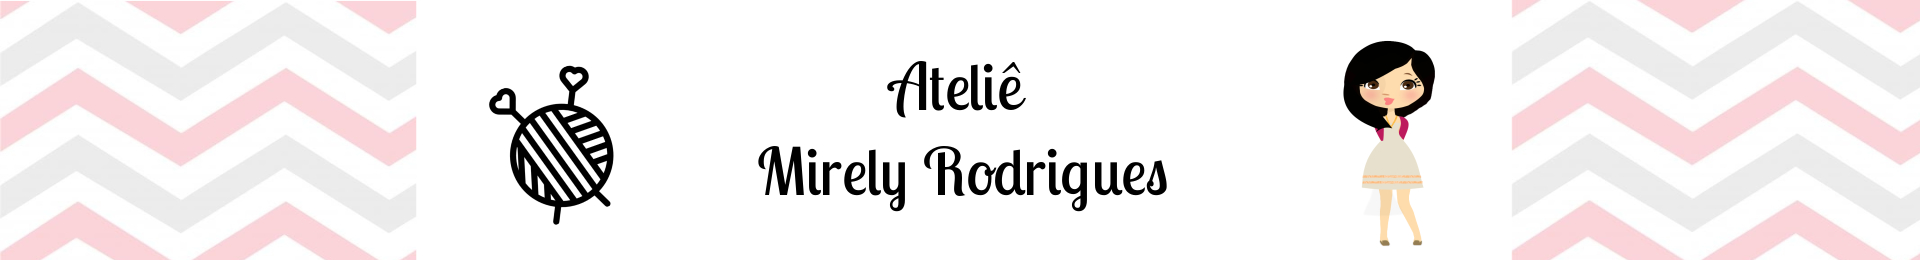 Ateliê Mirely Rodrigues